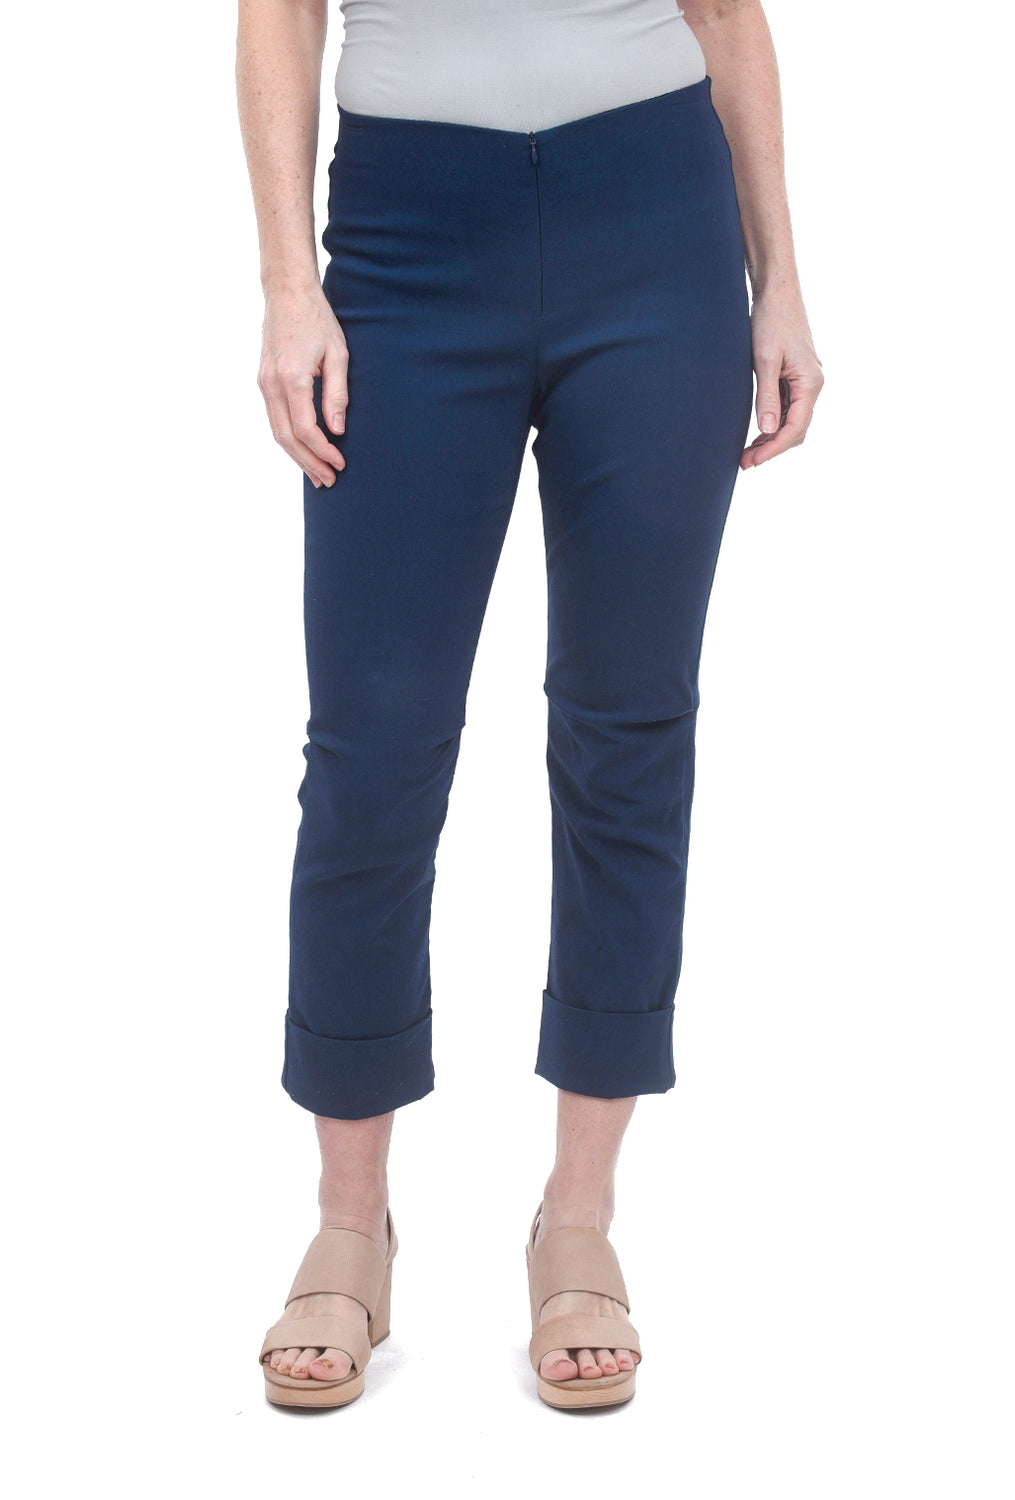 Porto New Vespa Pants, Bayou Blue